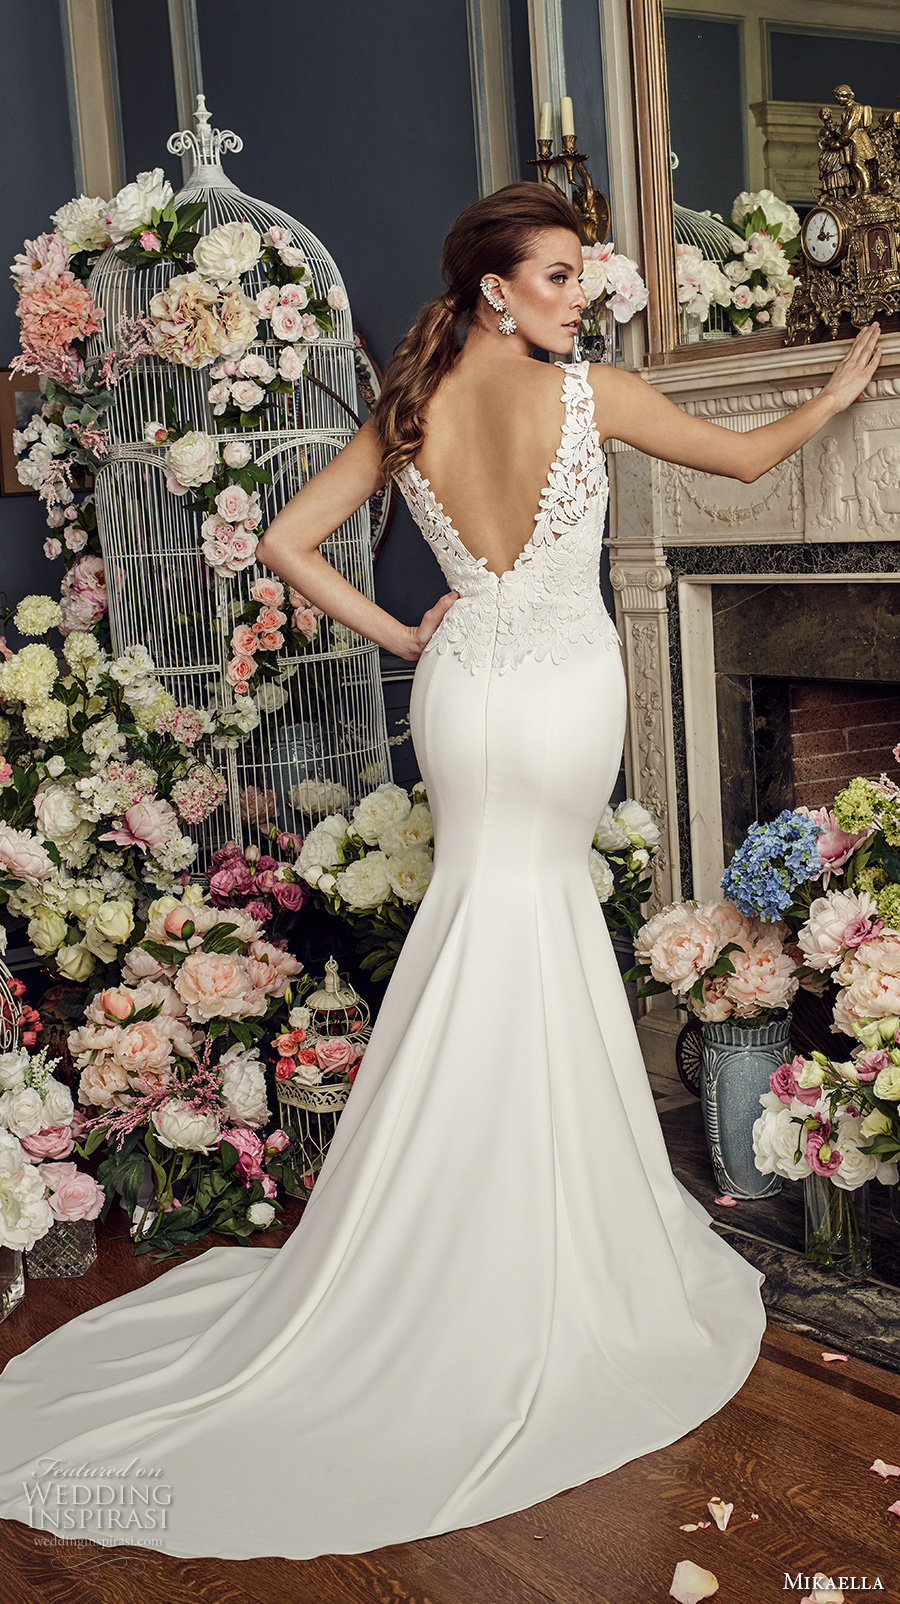 mikaella fall 2017 bridal sleeveless thick strap deep plunging v neck heavily embellished bodice satin skirt elegant sheath wedding dress open v back chapel train (2160) bv